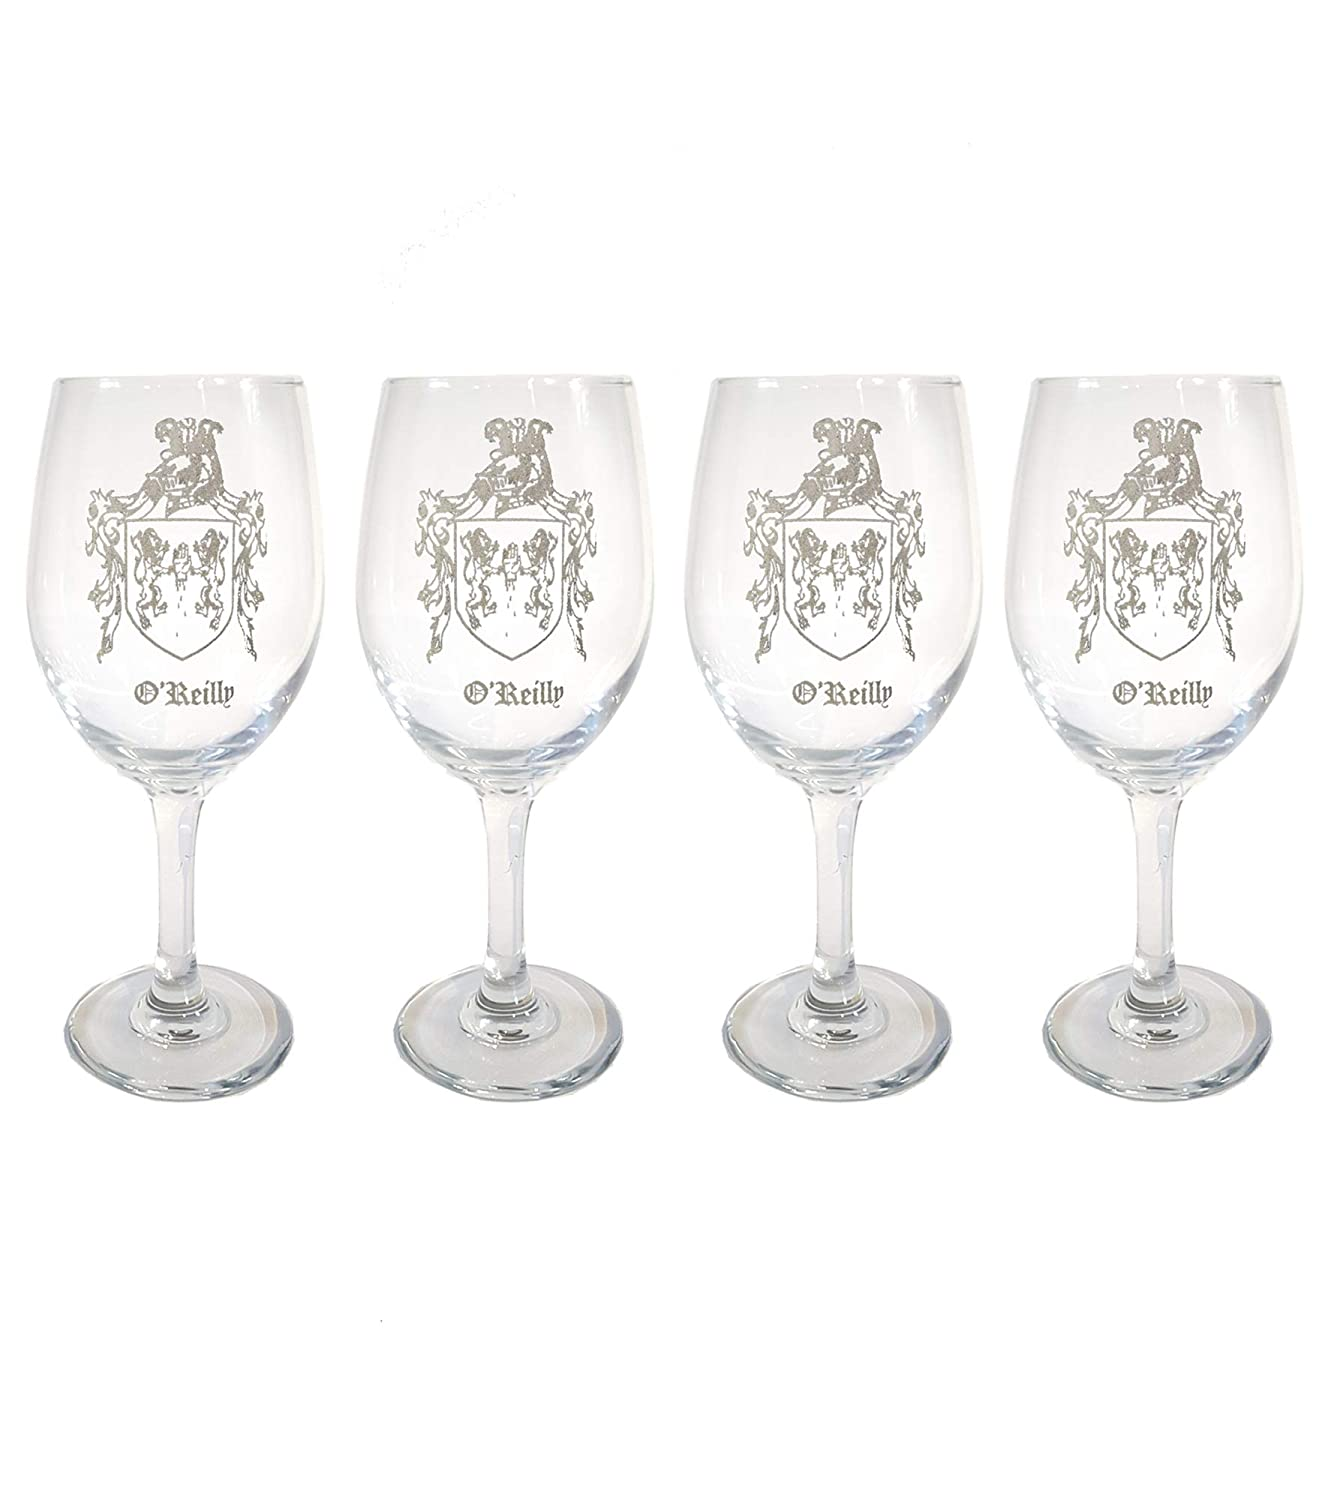 O'Reilly Irish Family Coat of Arms Glass Set Long Beach Mall 18oz Max 41% OFF Clear Wine